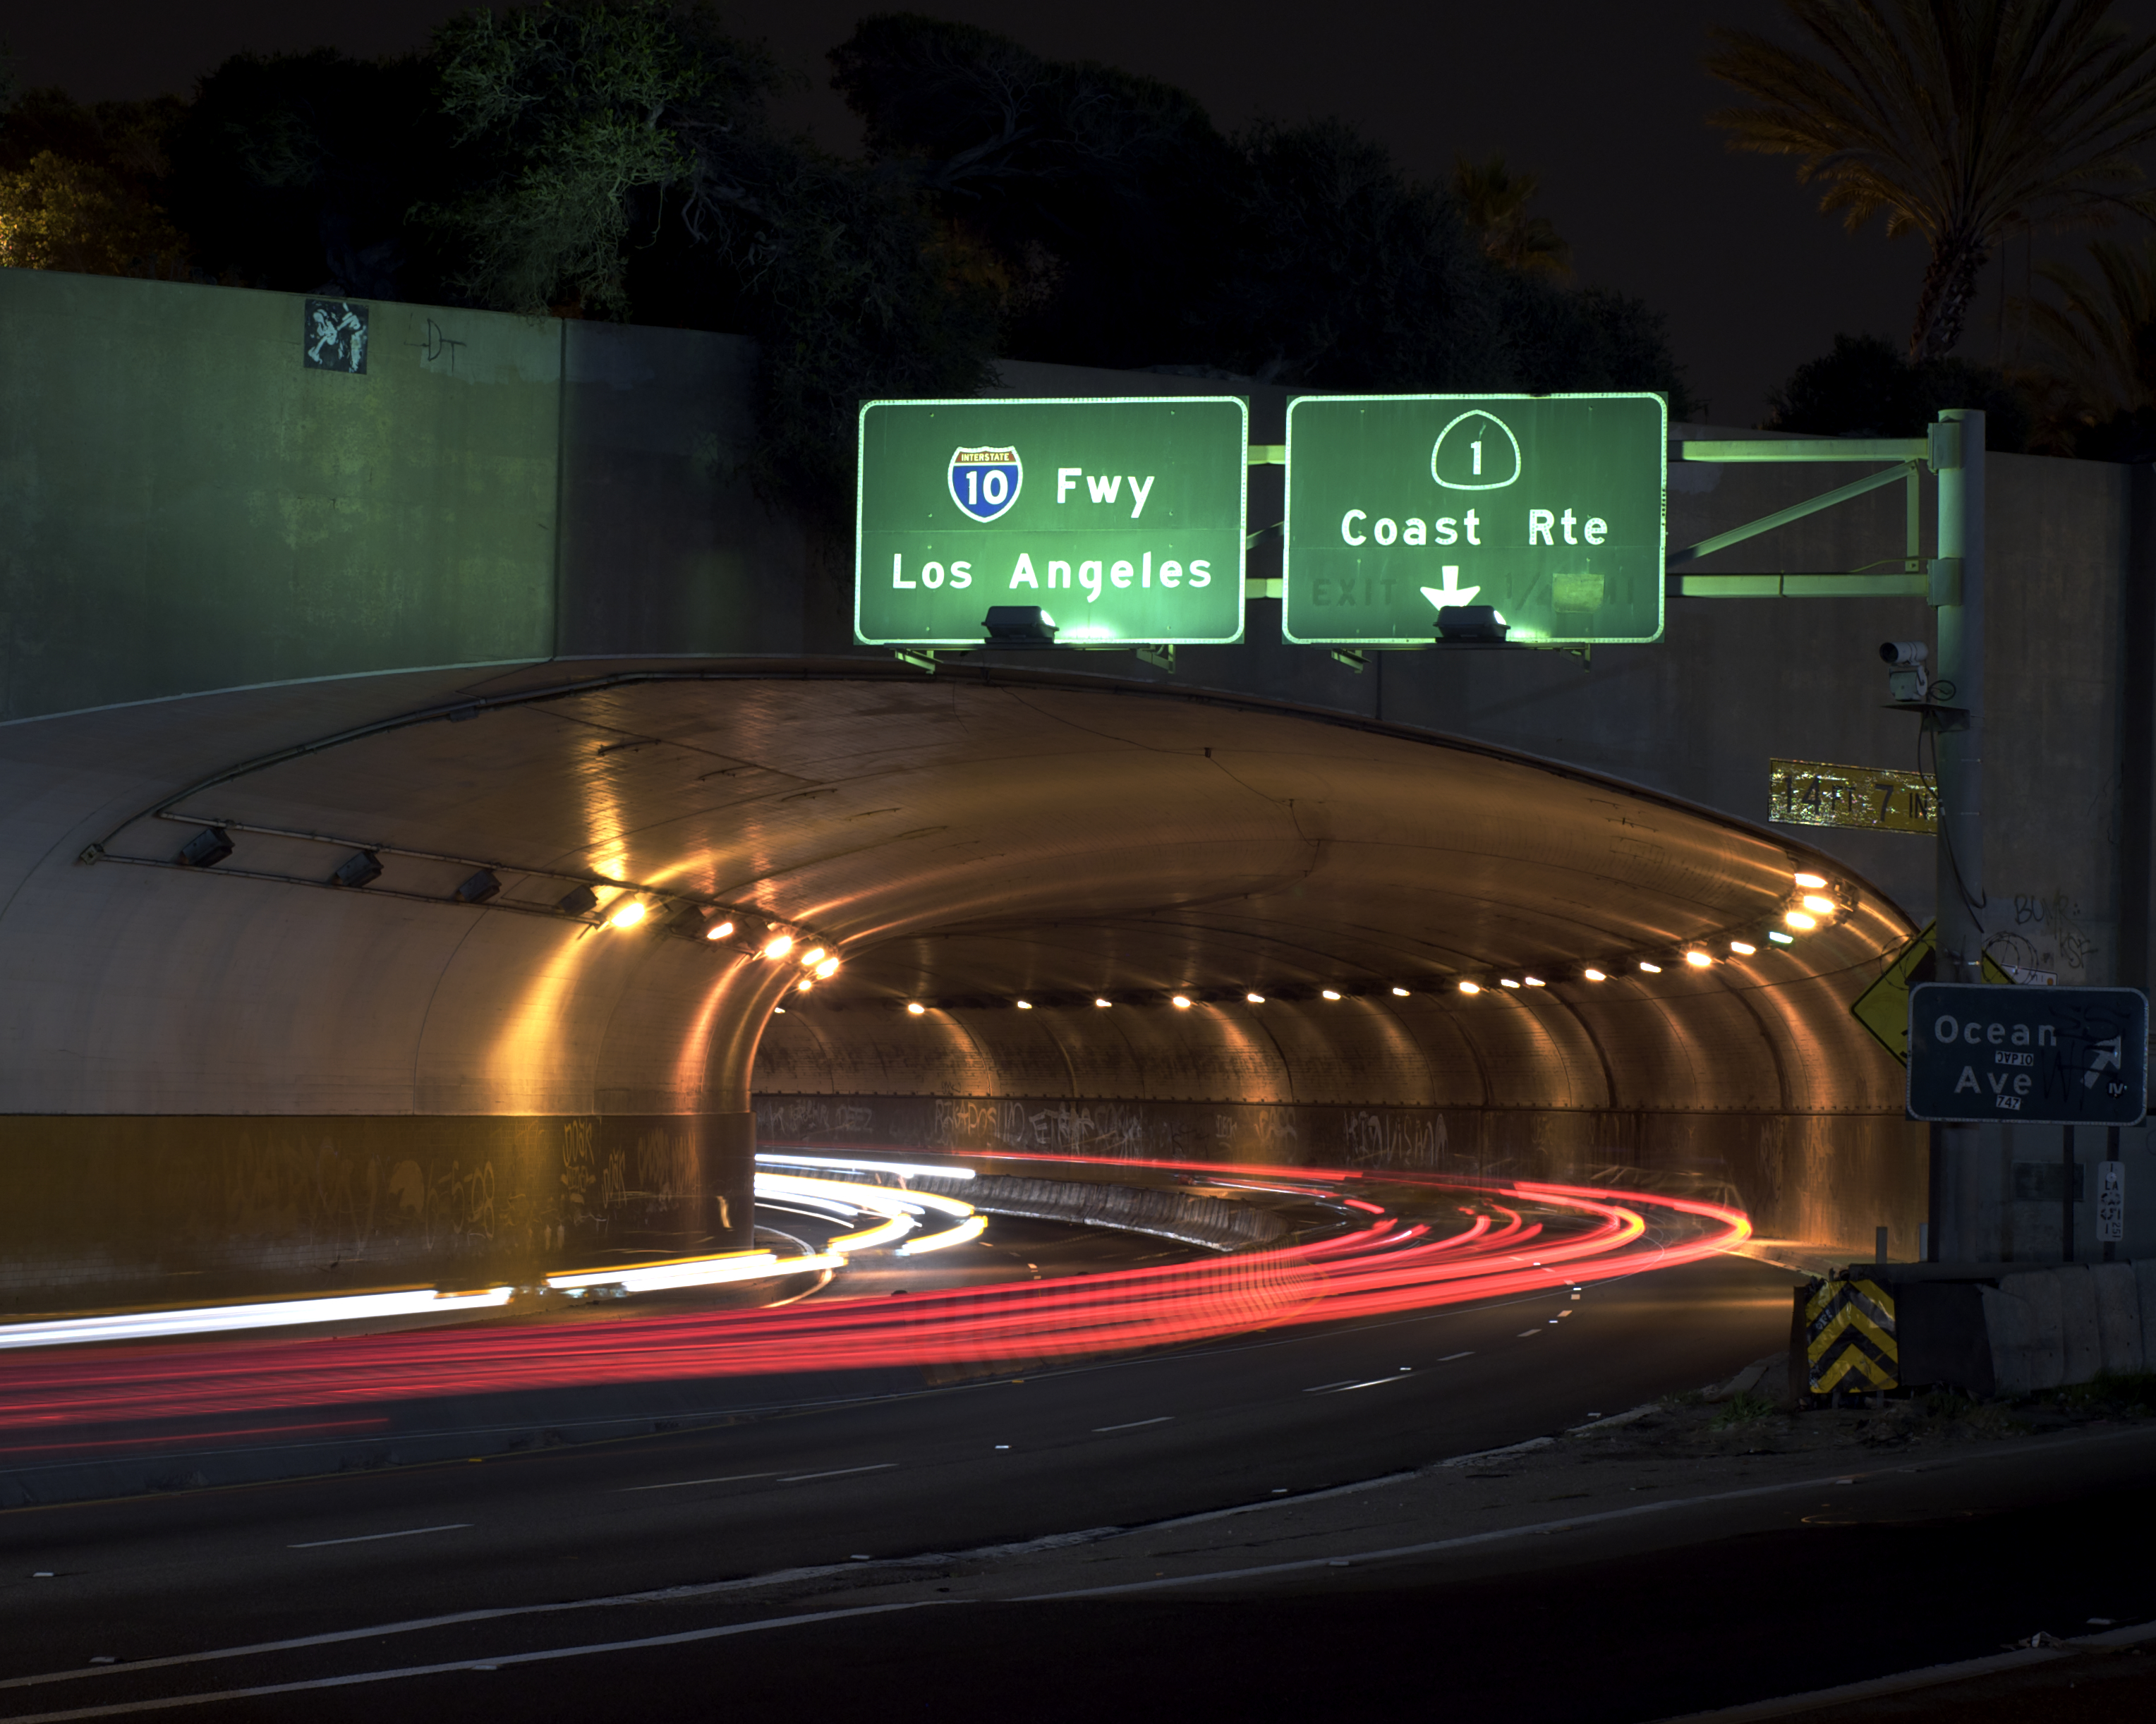 Interstate 10 begins at the McClure Tunnel